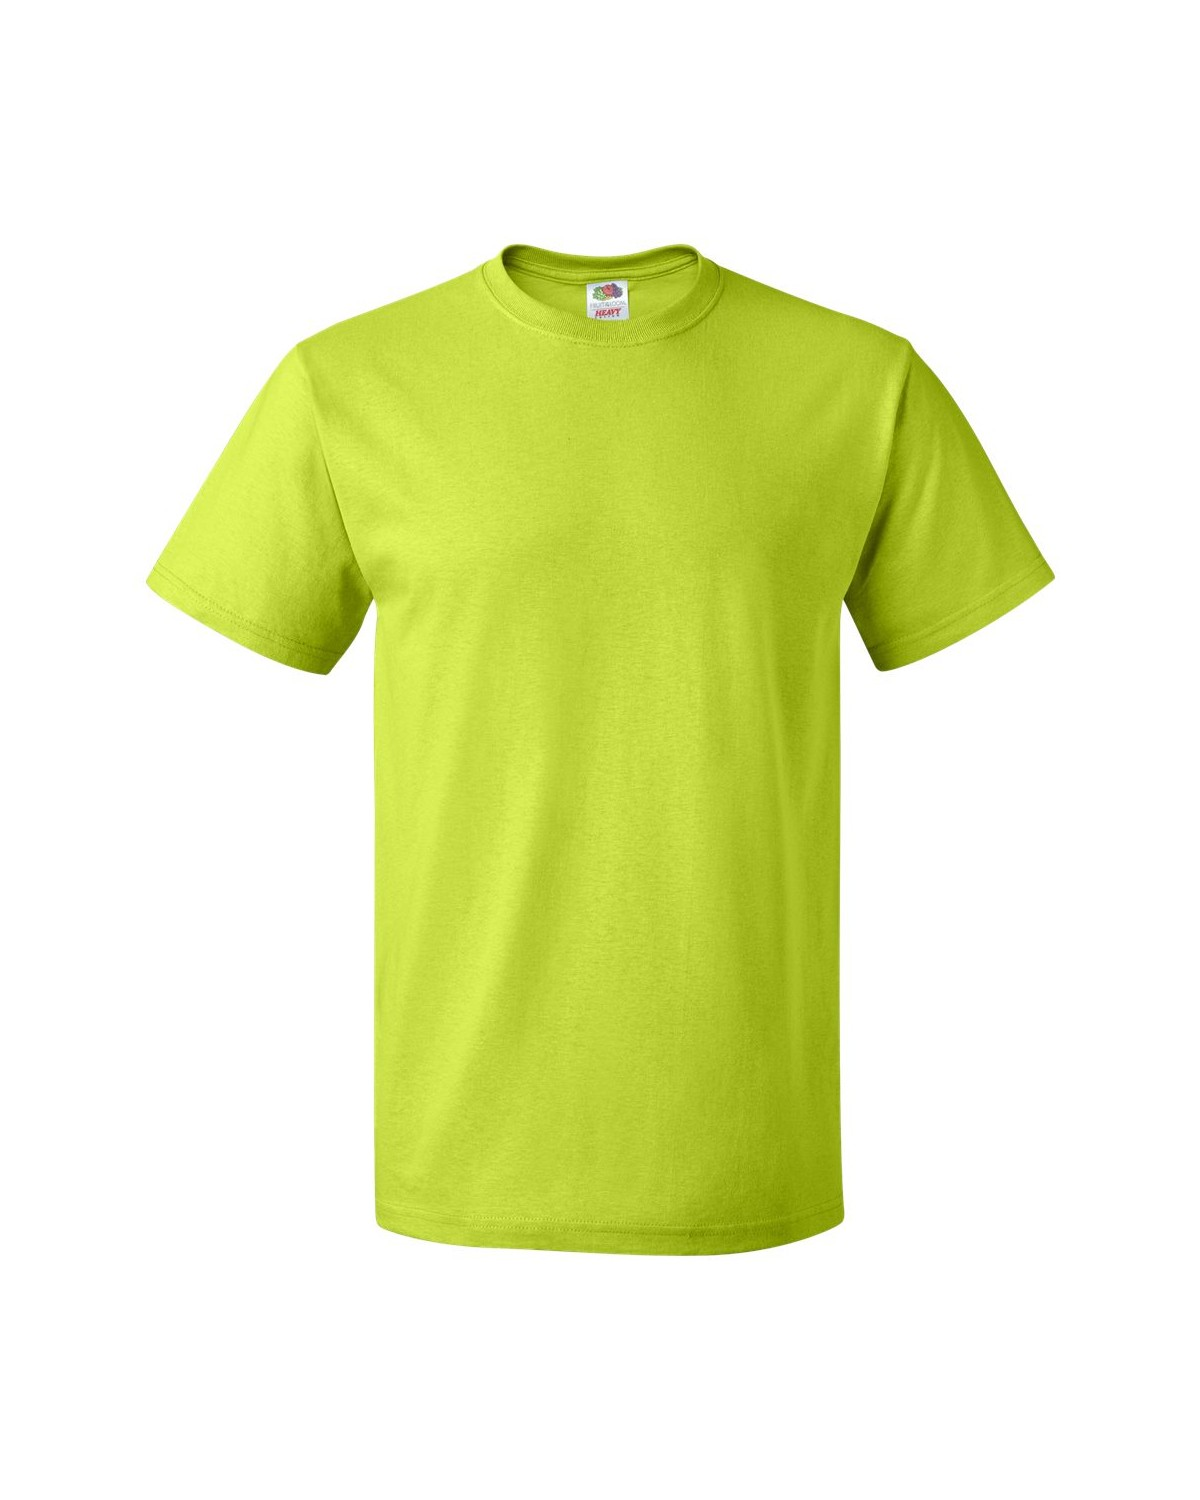 3930R Fruit of the Loom NEON GREEN